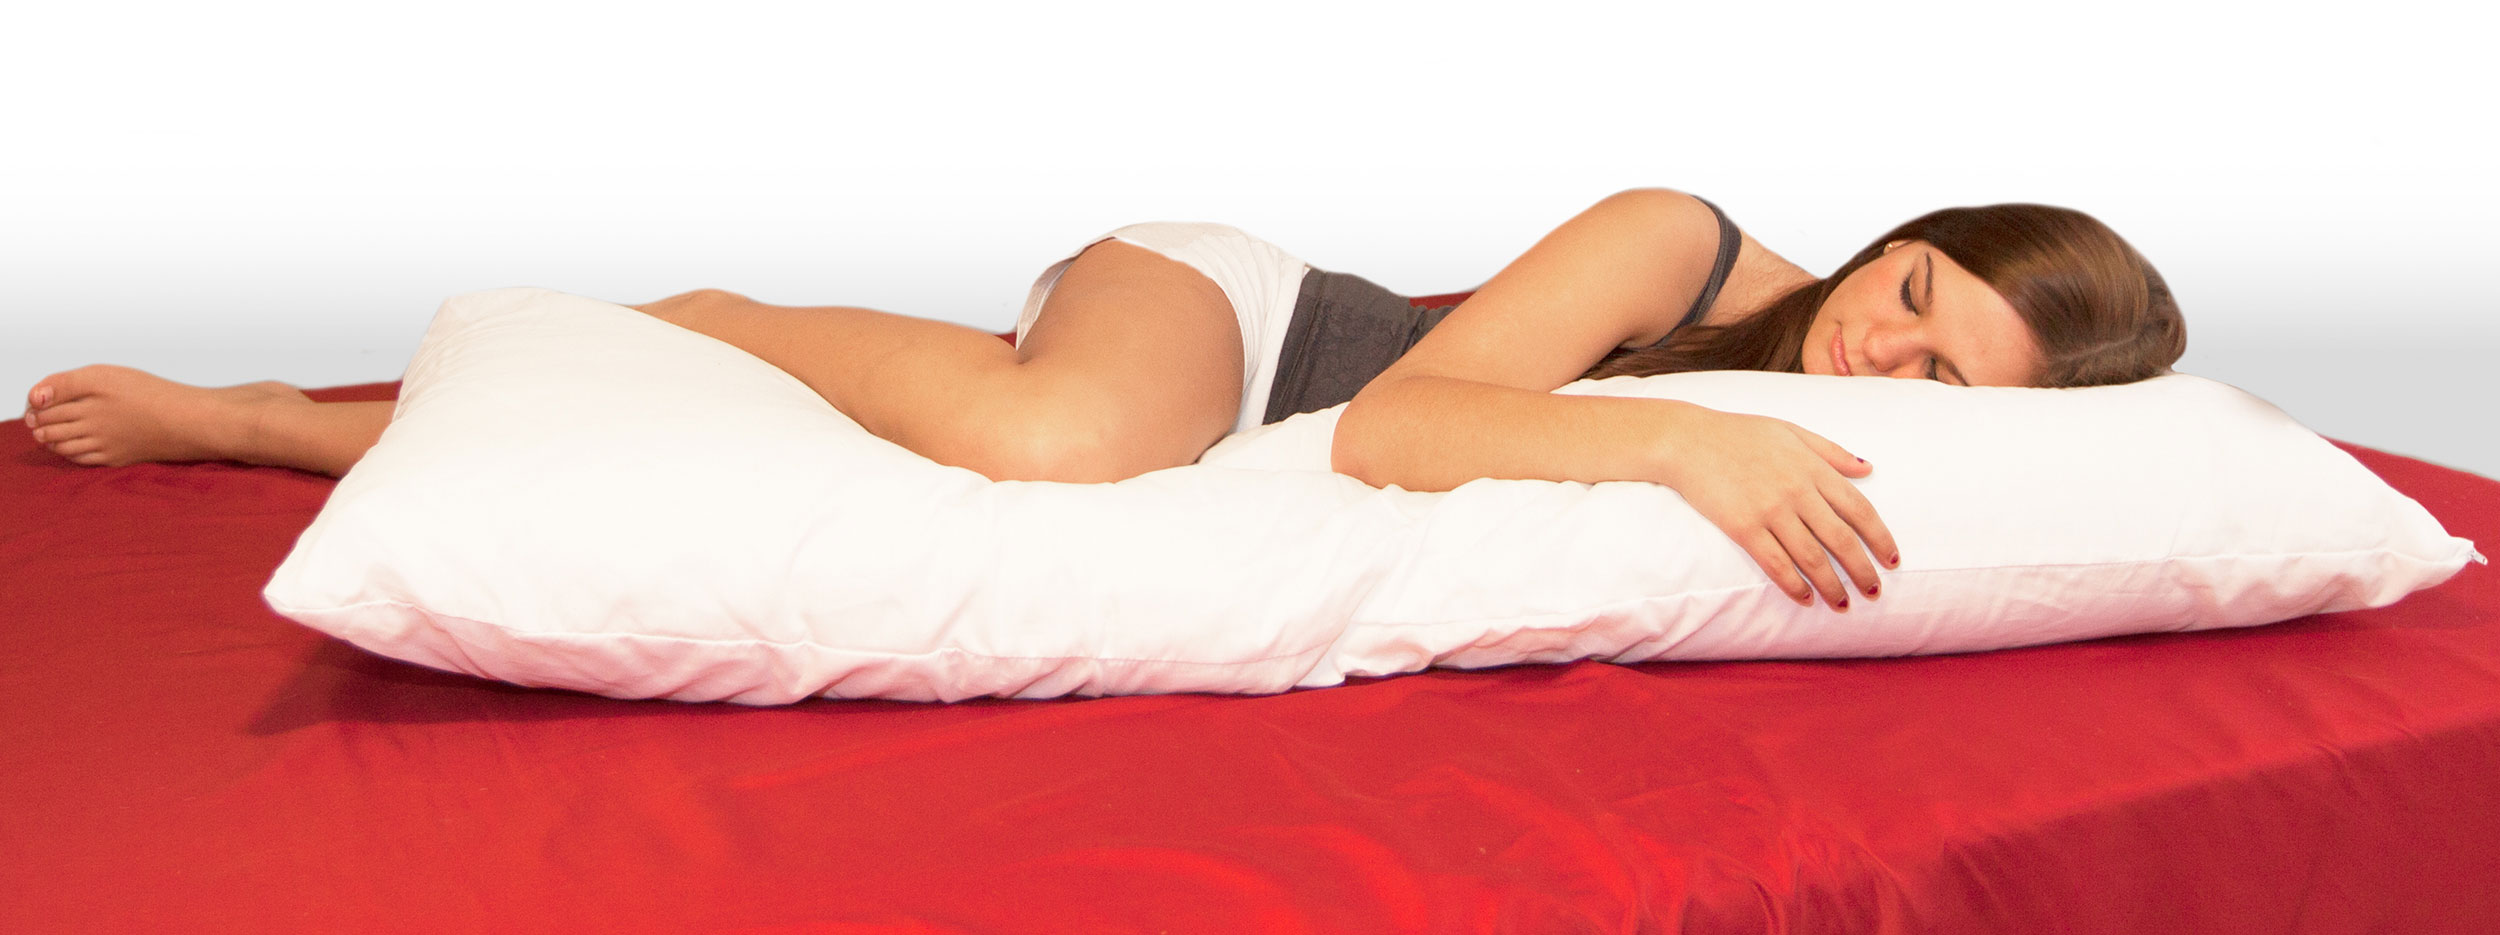 back support pillow in bed pillows. Black Bedroom Furniture Sets. Home Design Ideas